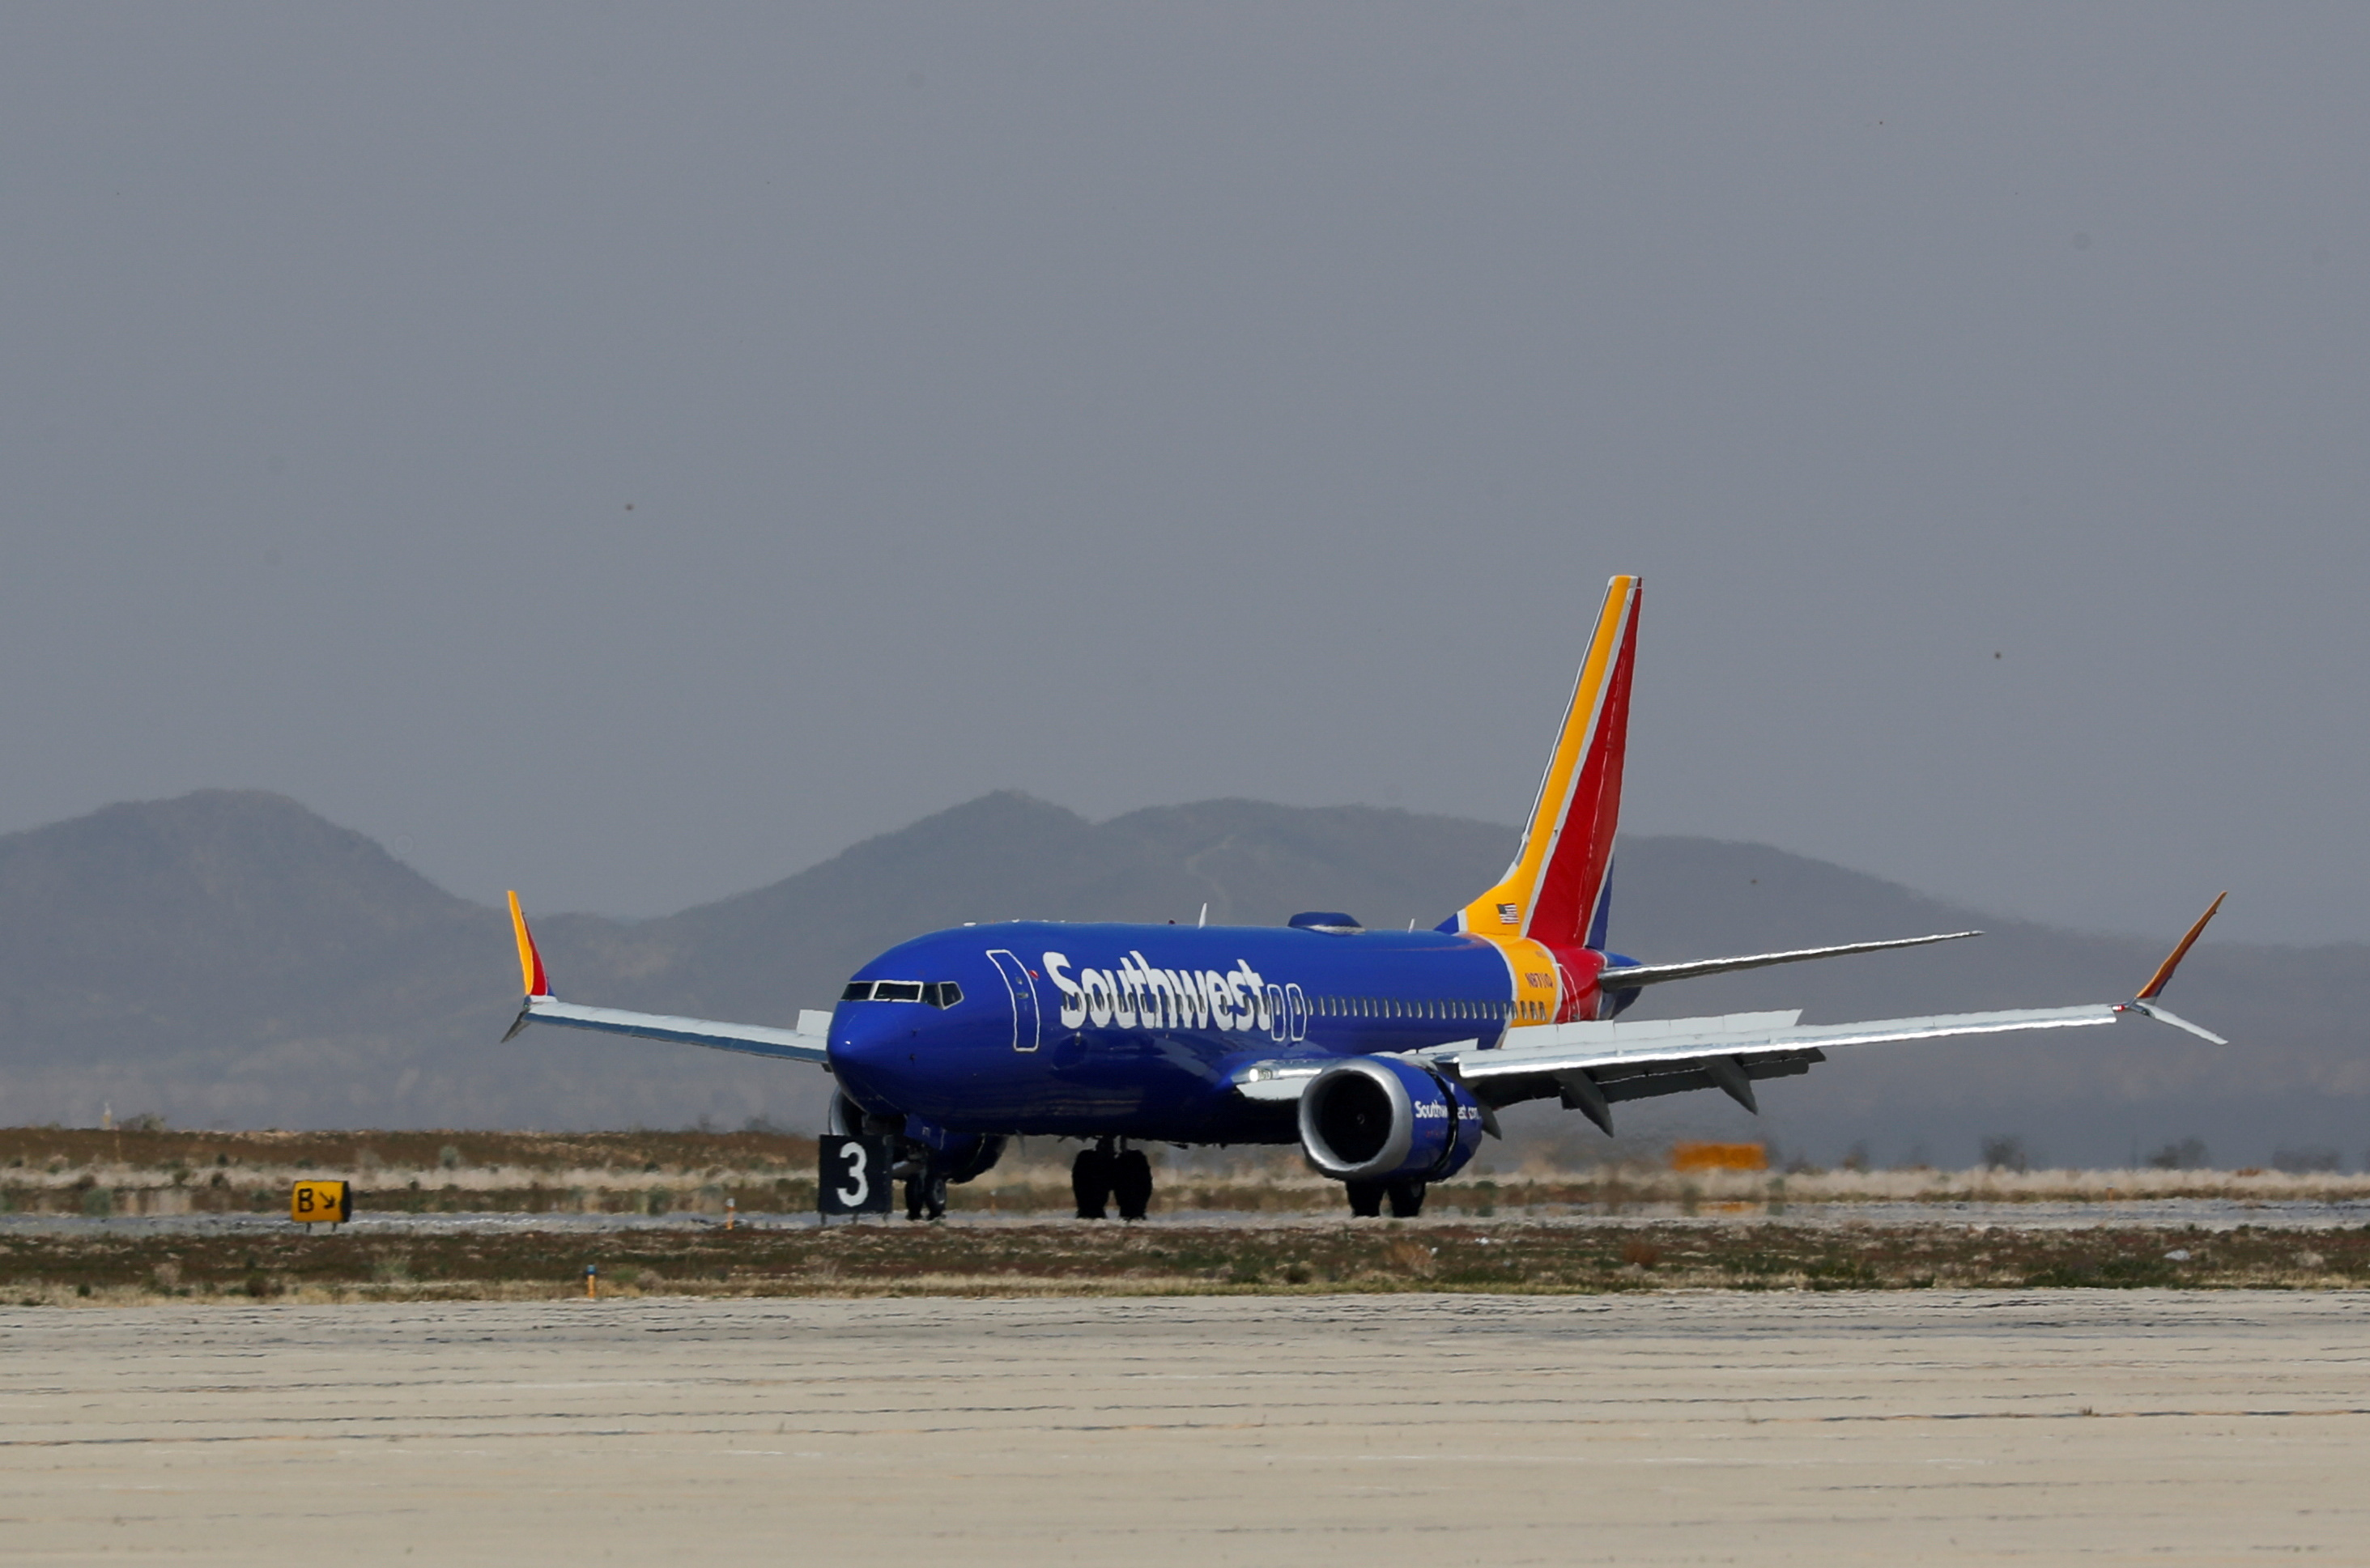 A Southwest Airline Boeing 737 MAX 8 aircraft lands at Victorville Airport in Victorville, California, U.S., March 26, 2019.  REUTERS/Mike Blake